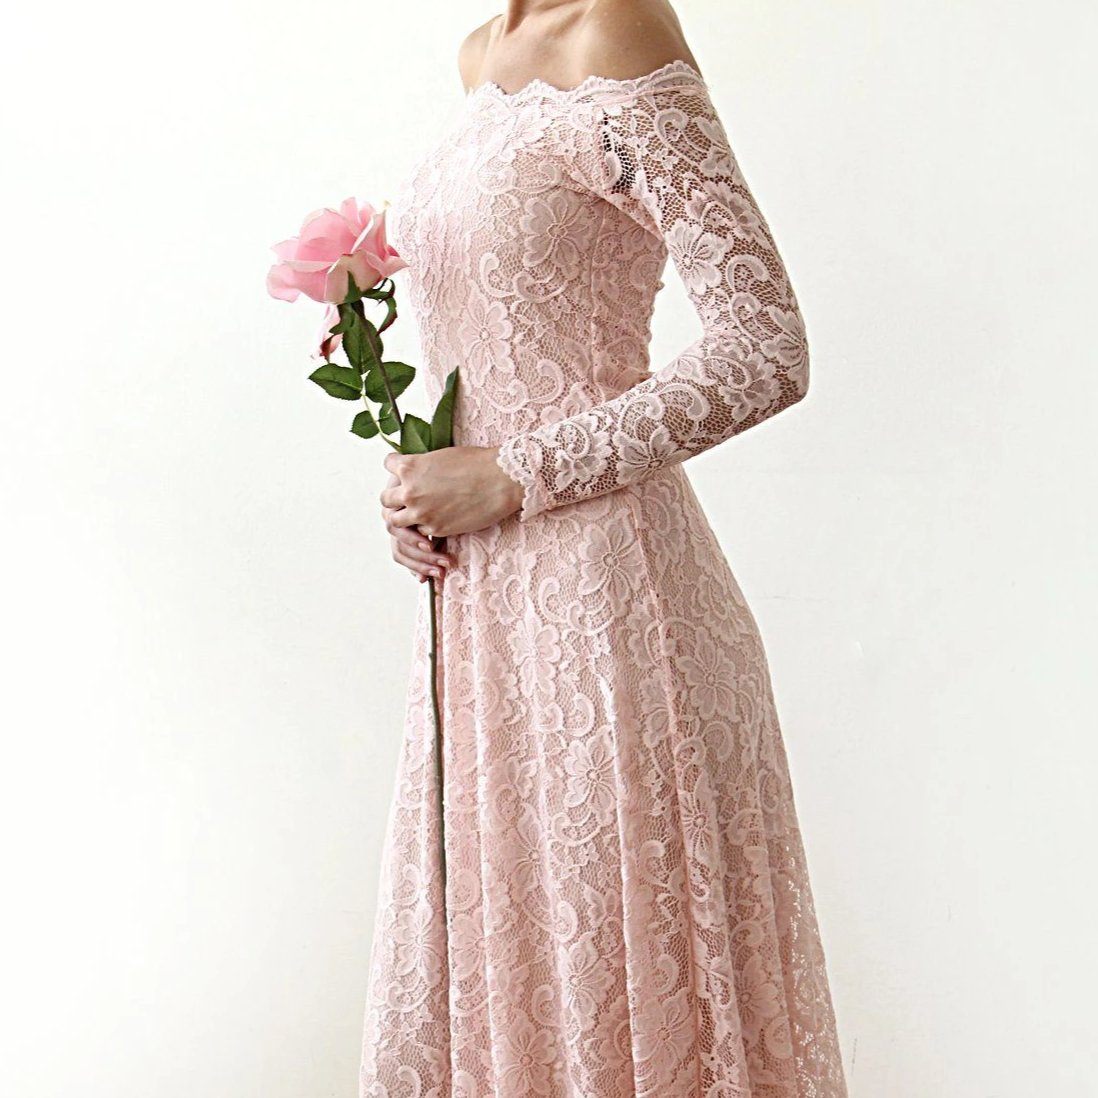 Pink Off-The-Shoulder Floral Lace Long Sleeve Gown With Train 1148 - Blushfashion